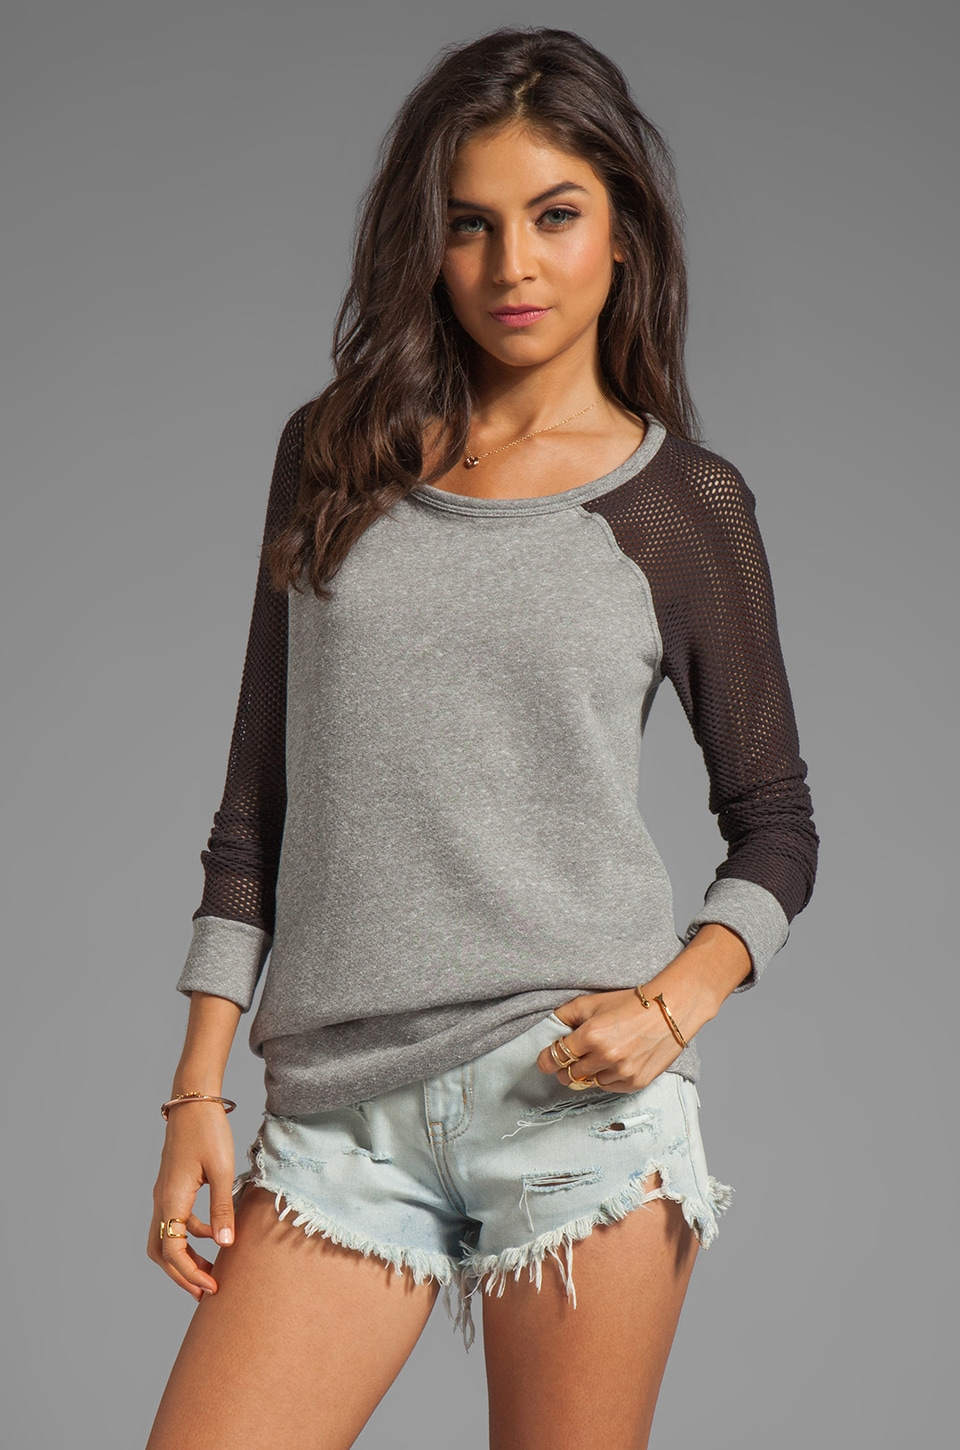 WOODLEIGH Ryder Top in Charcoal